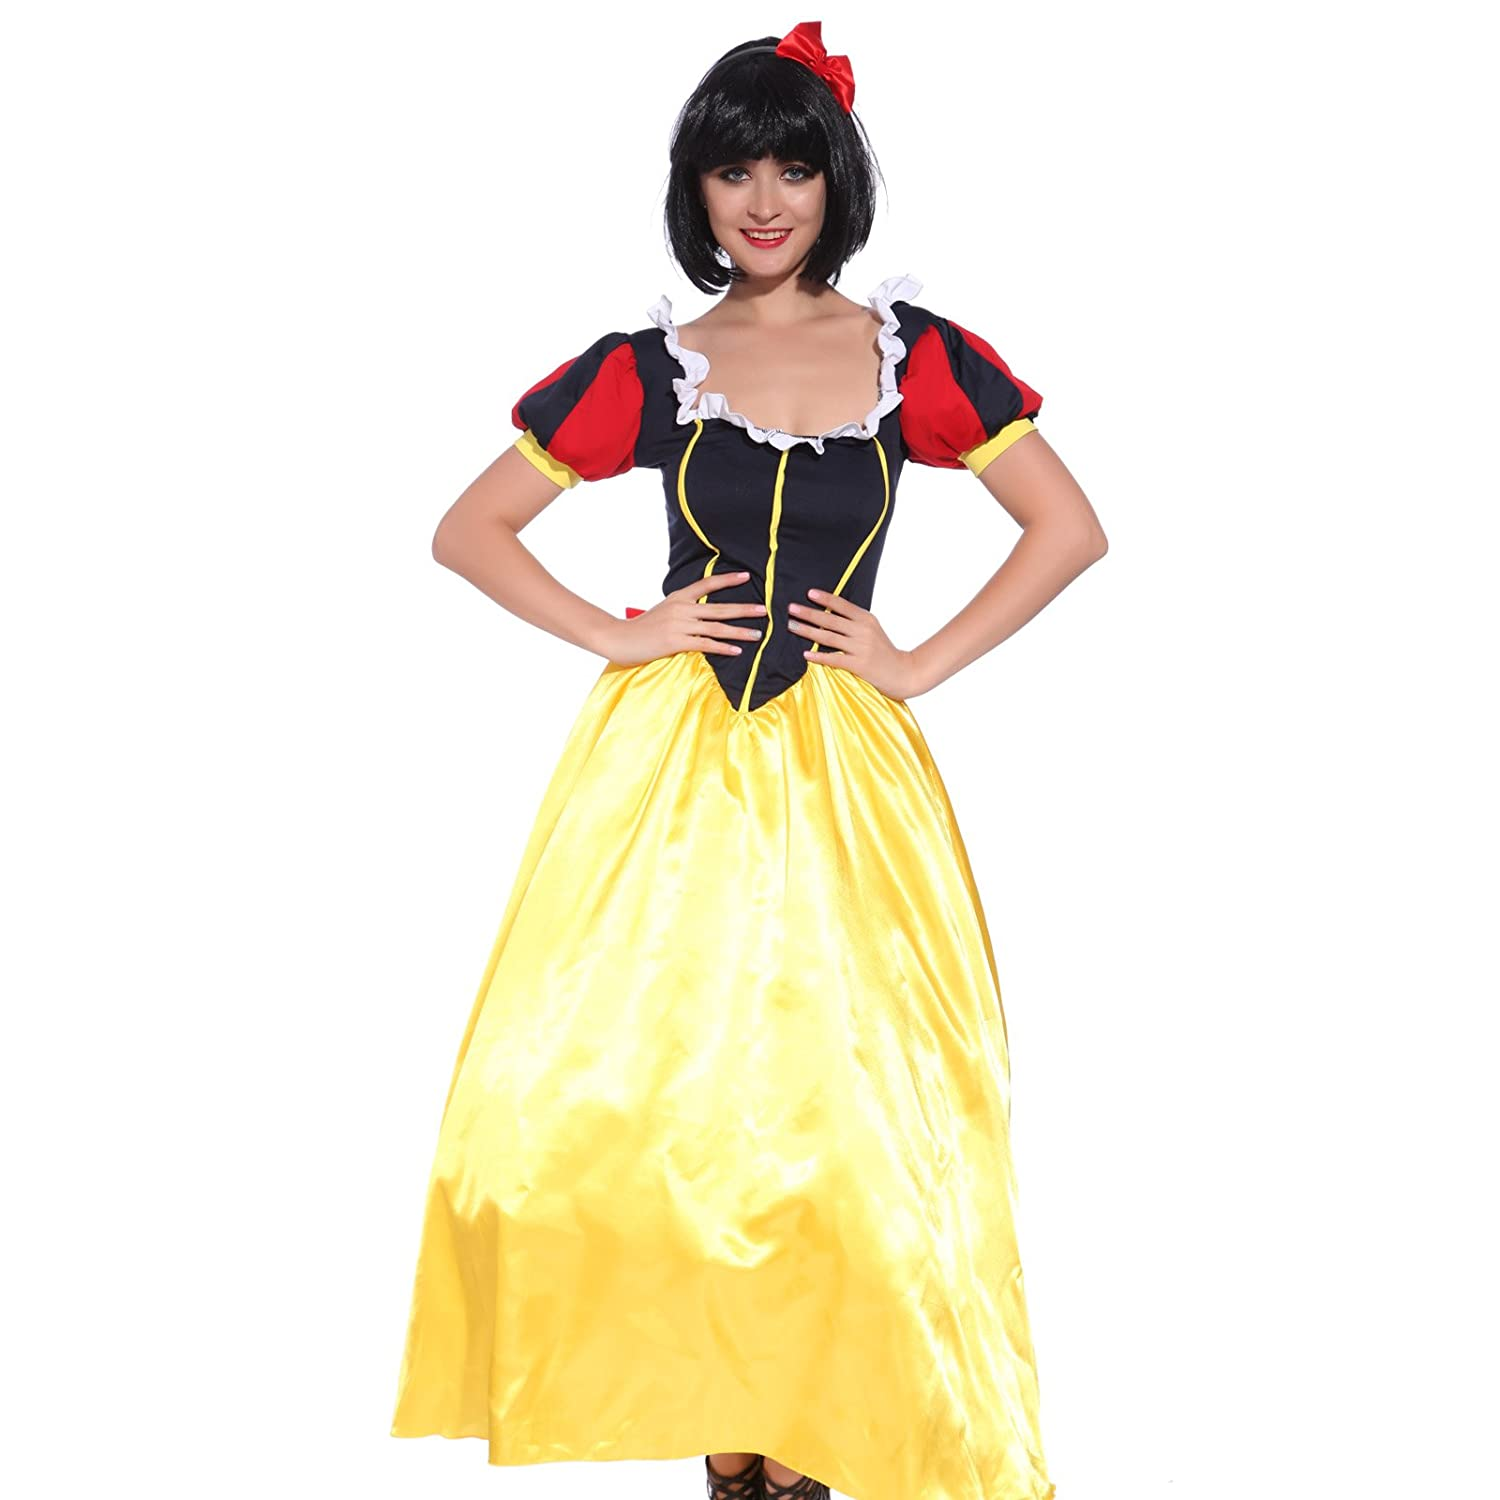 Anladia - Disfraz de blancanieves Vestido largo Cosplay Dress ...